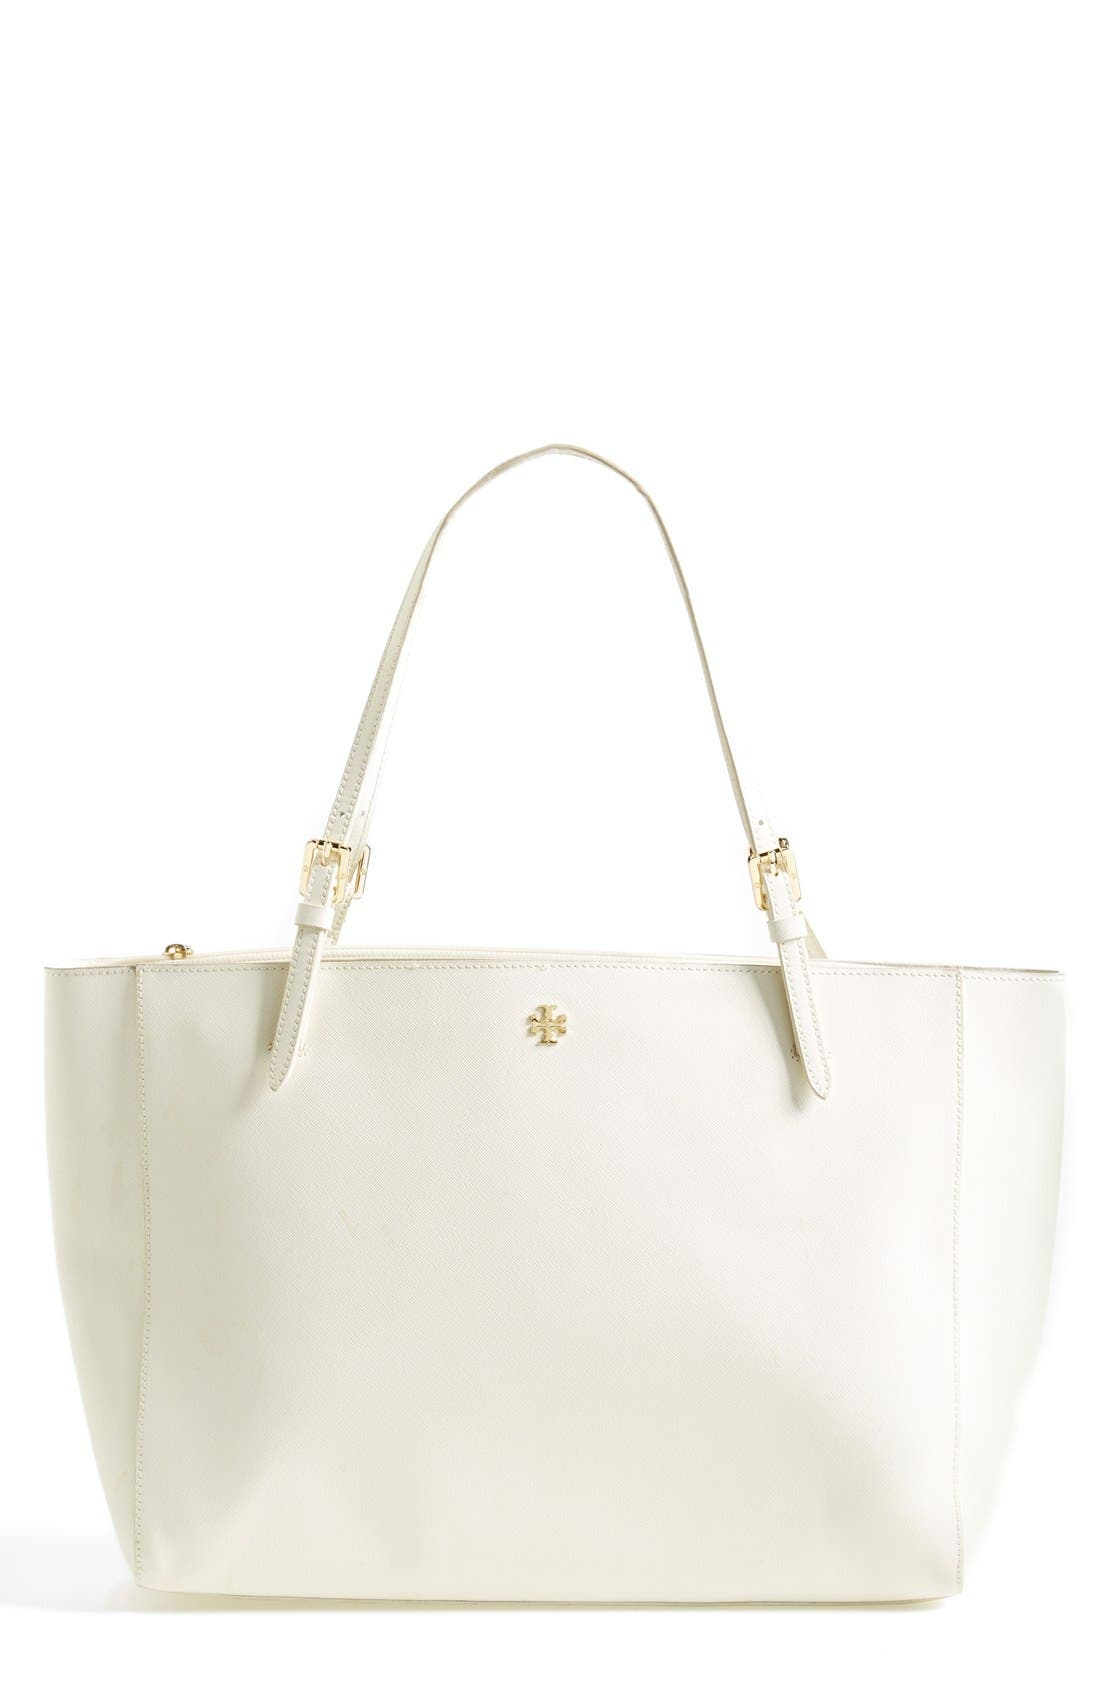 Main Image - Tory Burch 'York' Buckle Tote